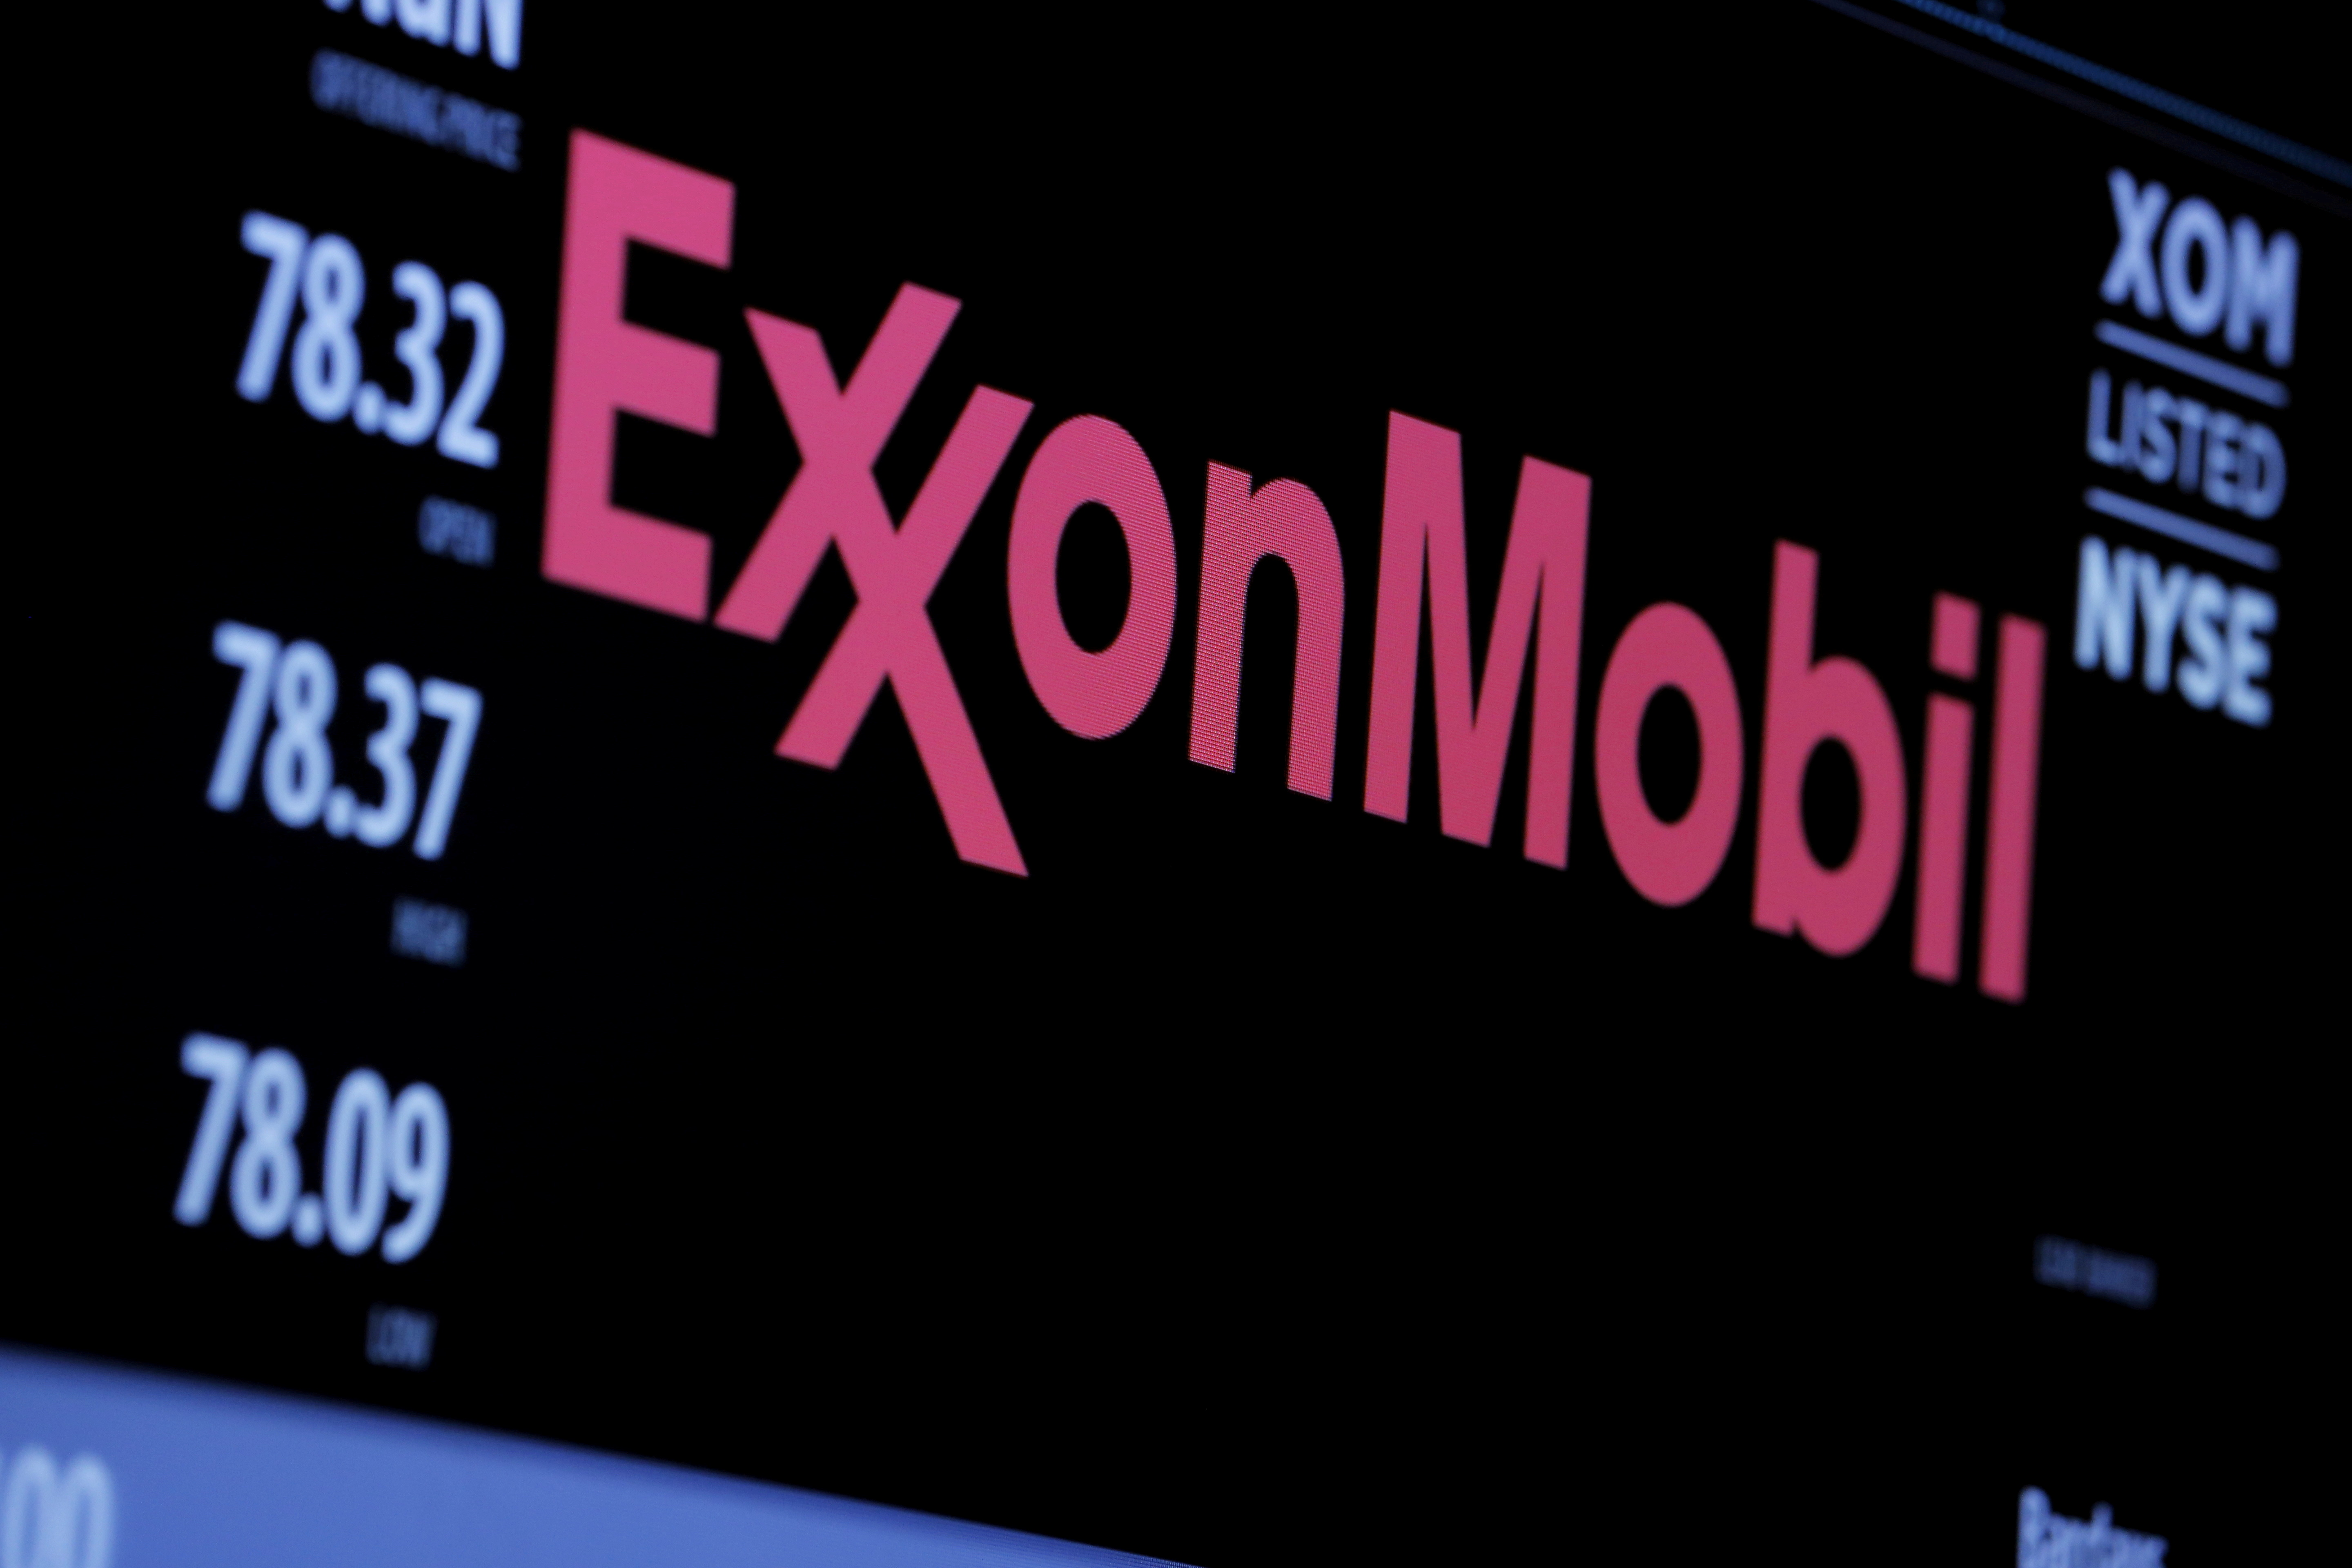 The logo of Exxon Mobil Corporation is shown on a monitor above the floor of the New York Stock Exchange in New York, December 30, 2015